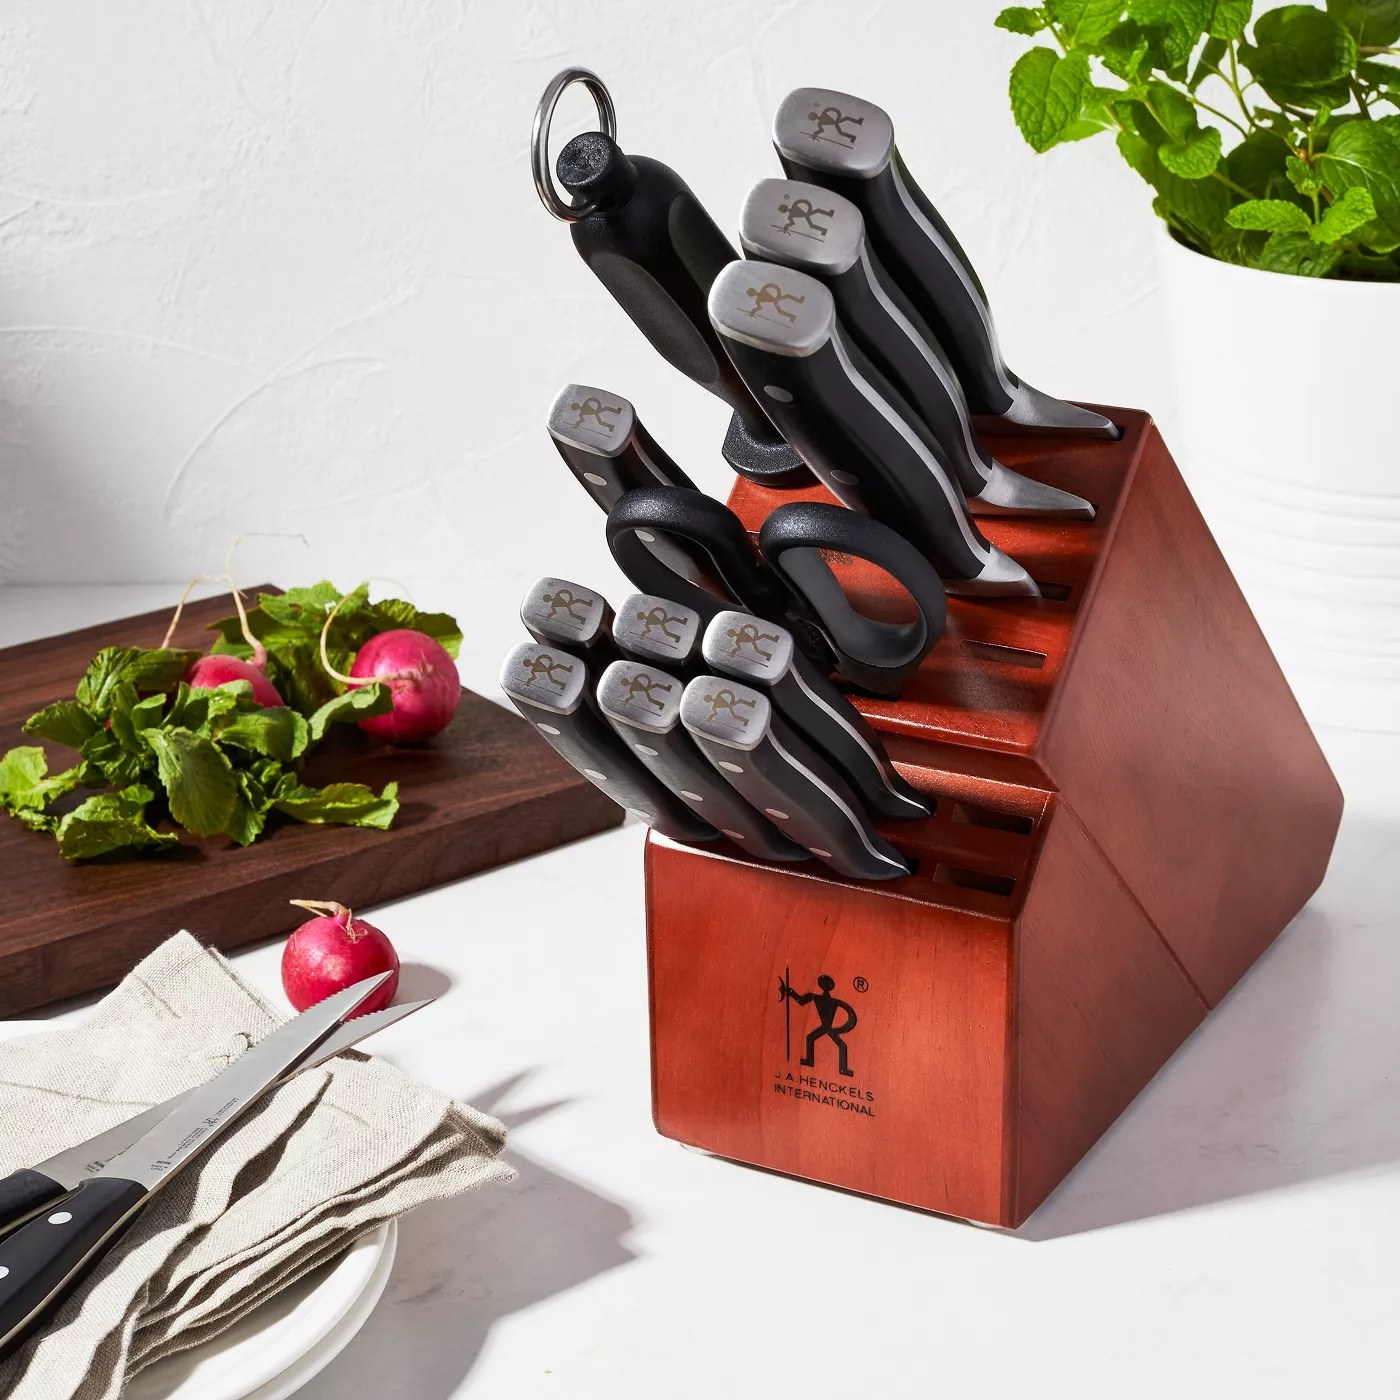 The knife block set